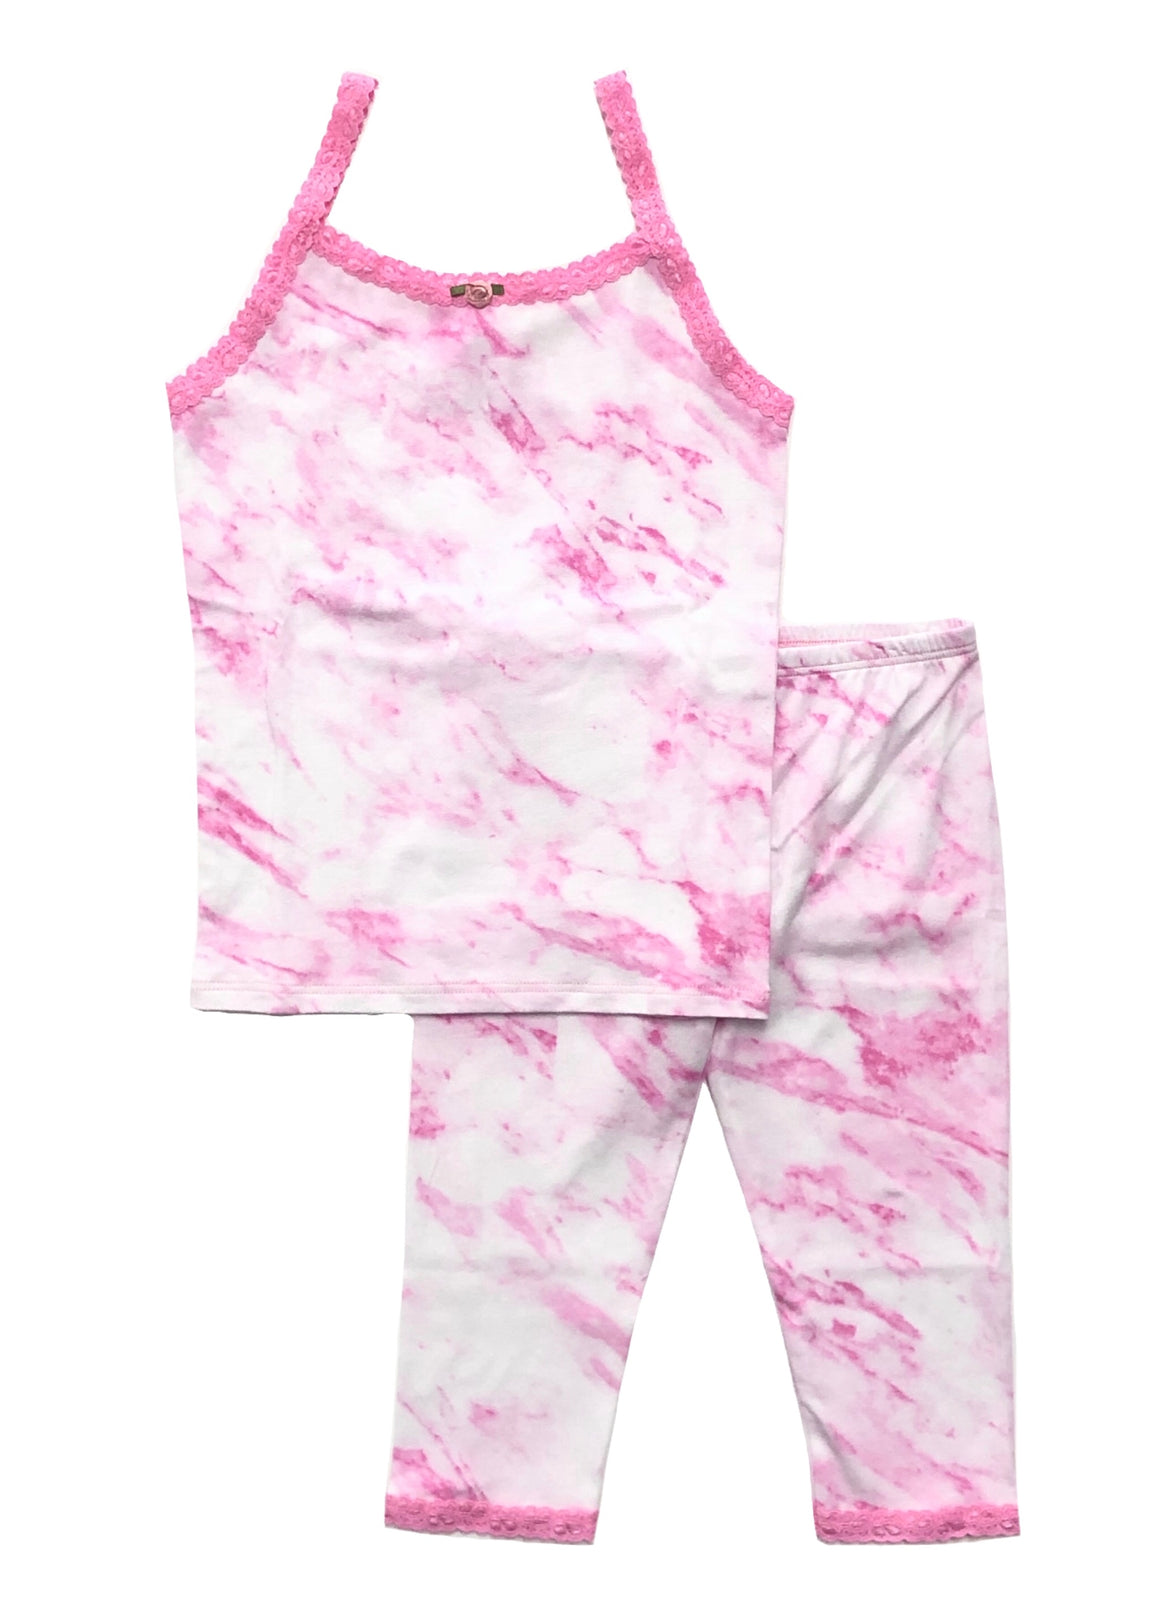 [Mommy & Me] Pink Marble Cami & Cropped Legging Set